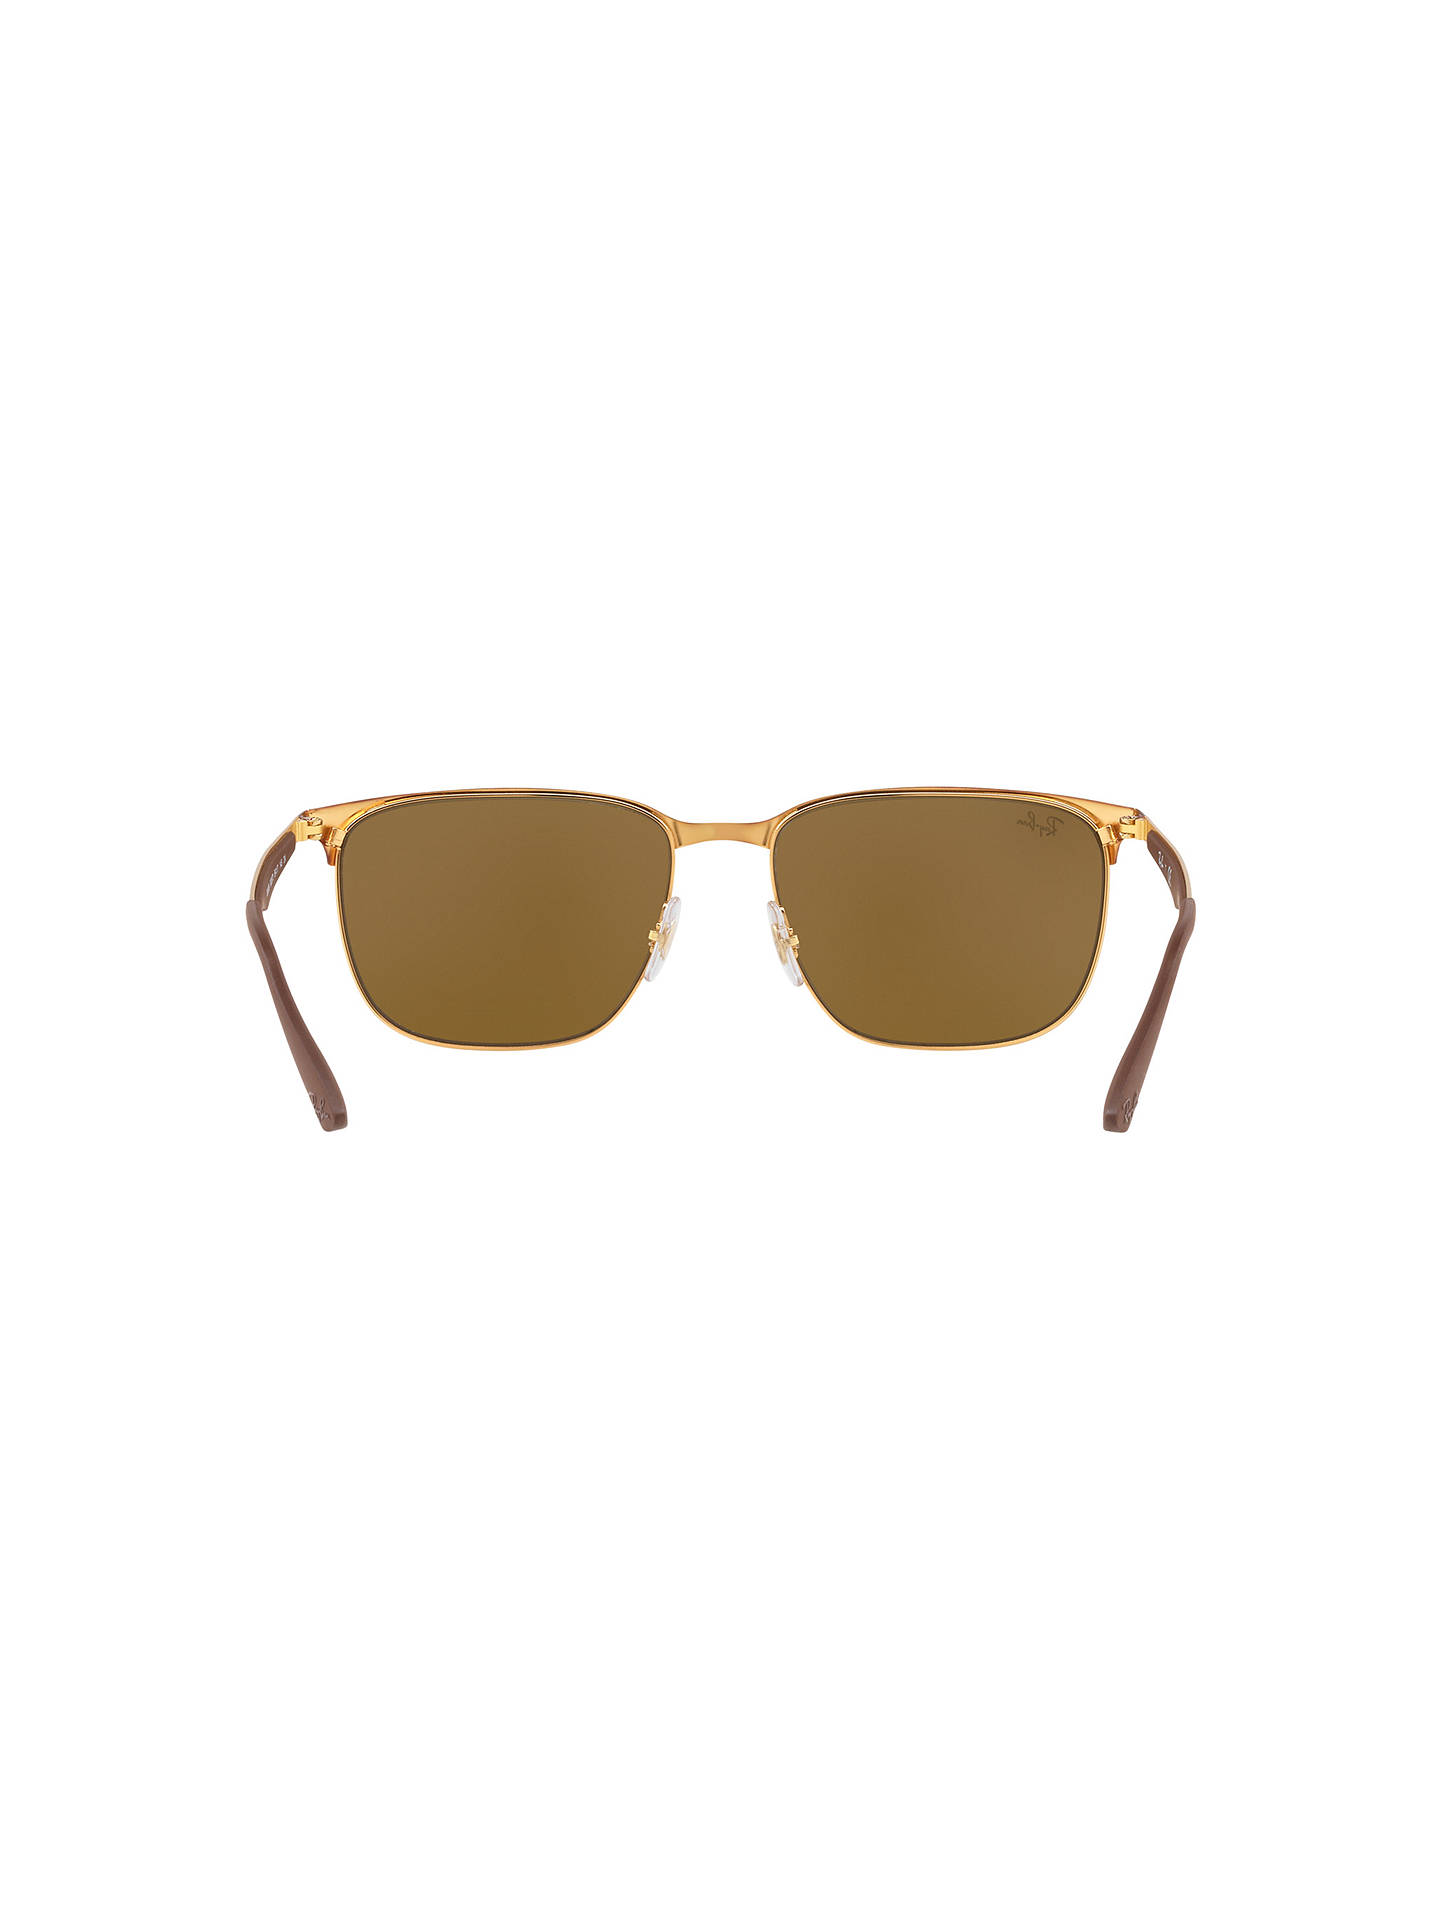 BuyRay-Ban RB3569 Square Sunglasses, Tortoise/Brown Online at johnlewis.com